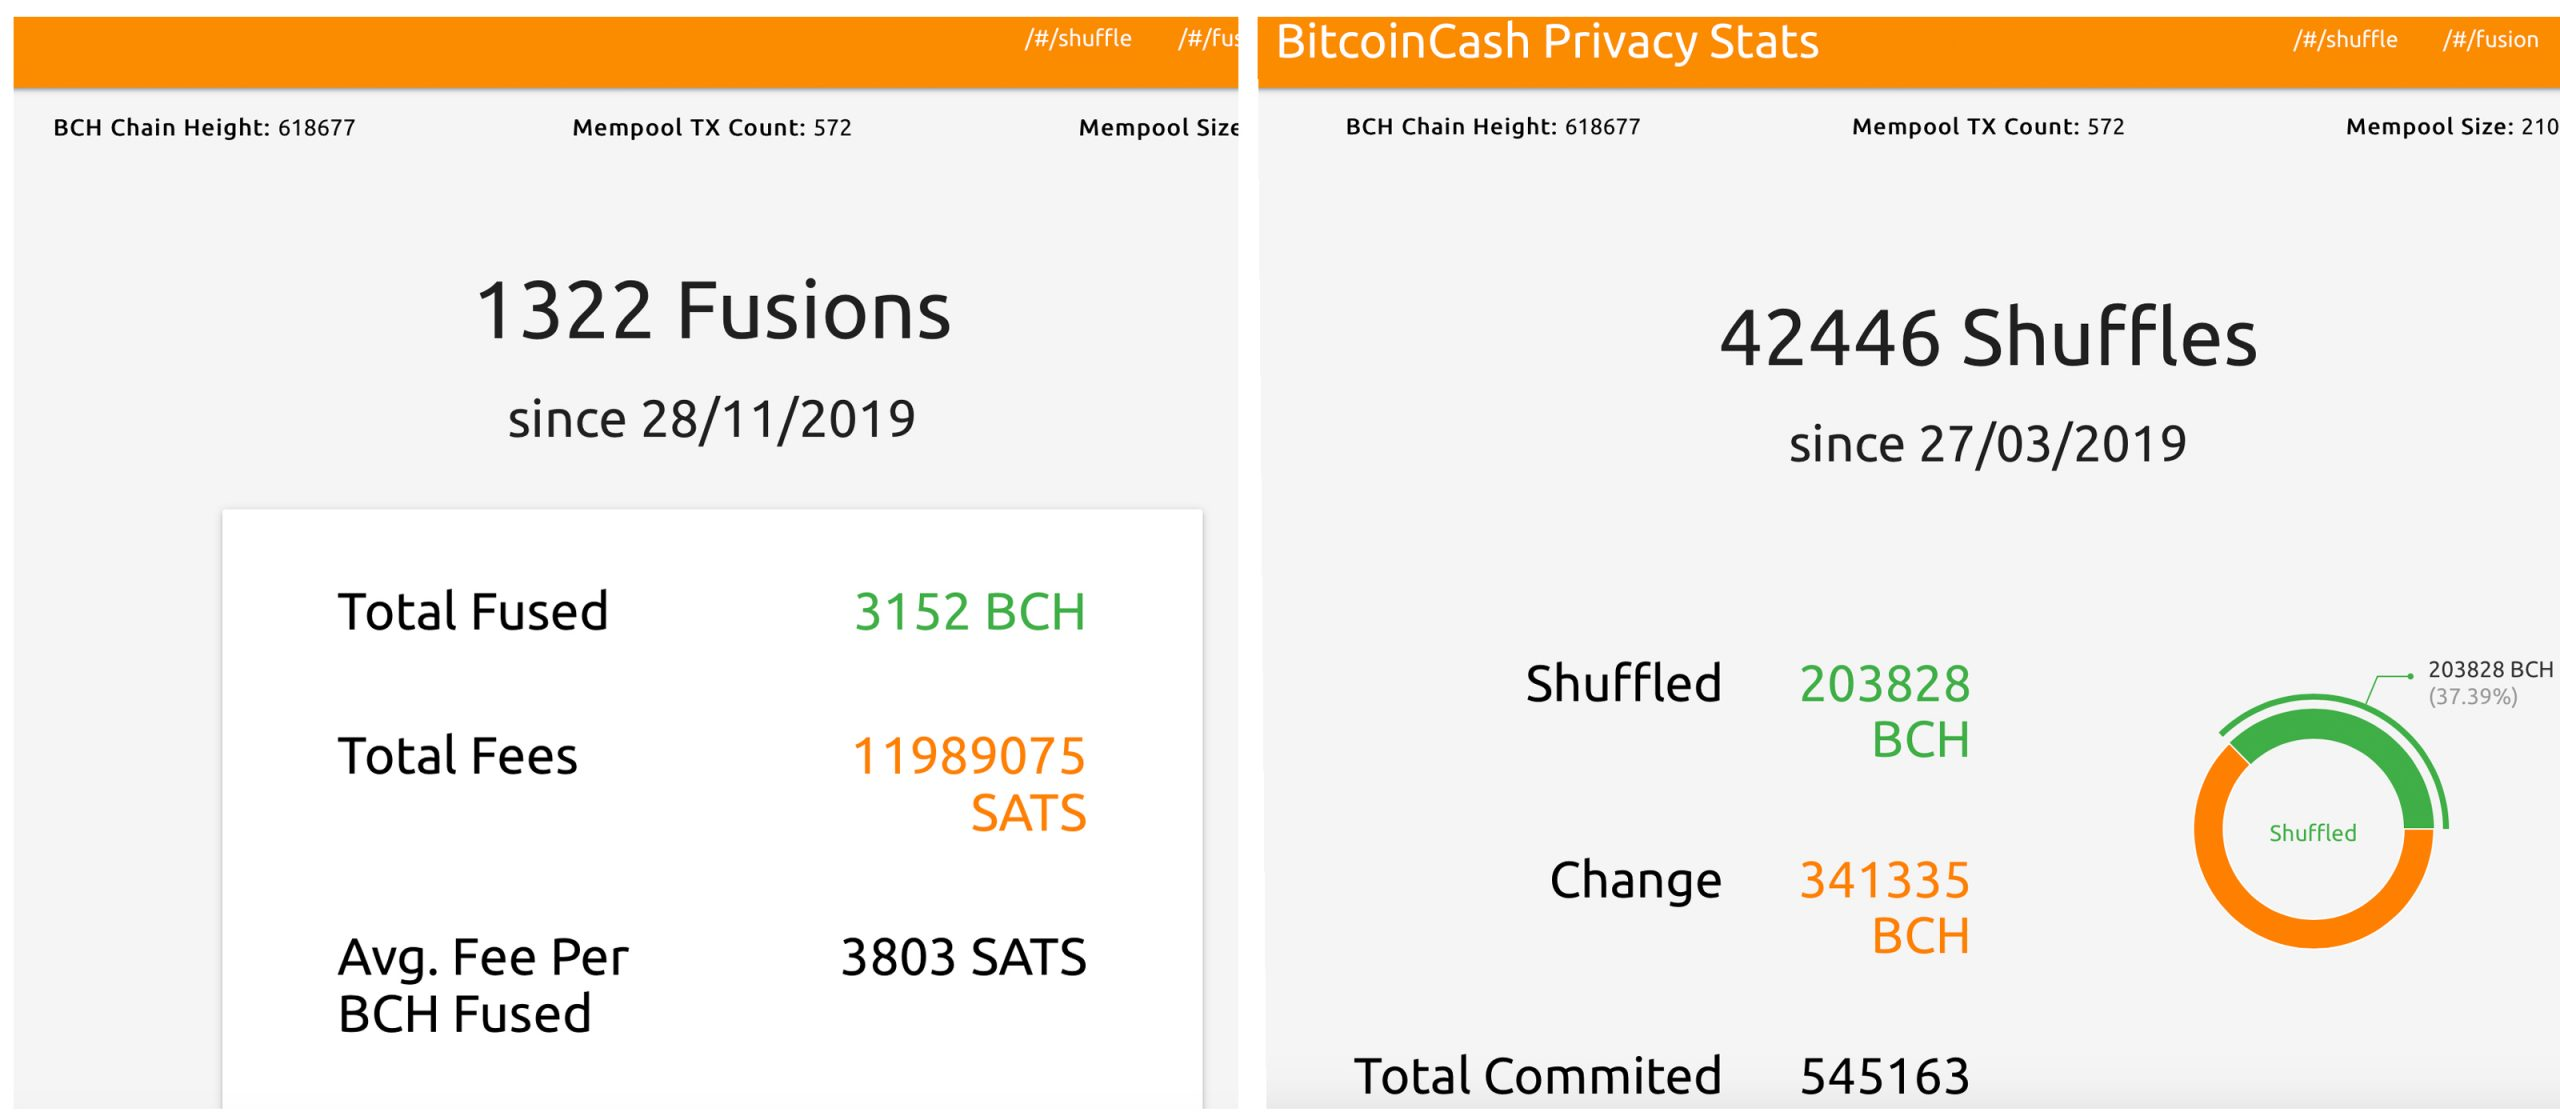 Bitcoin Cash Gets Significant Privacy Boost With Cashfusion Alpha Launch